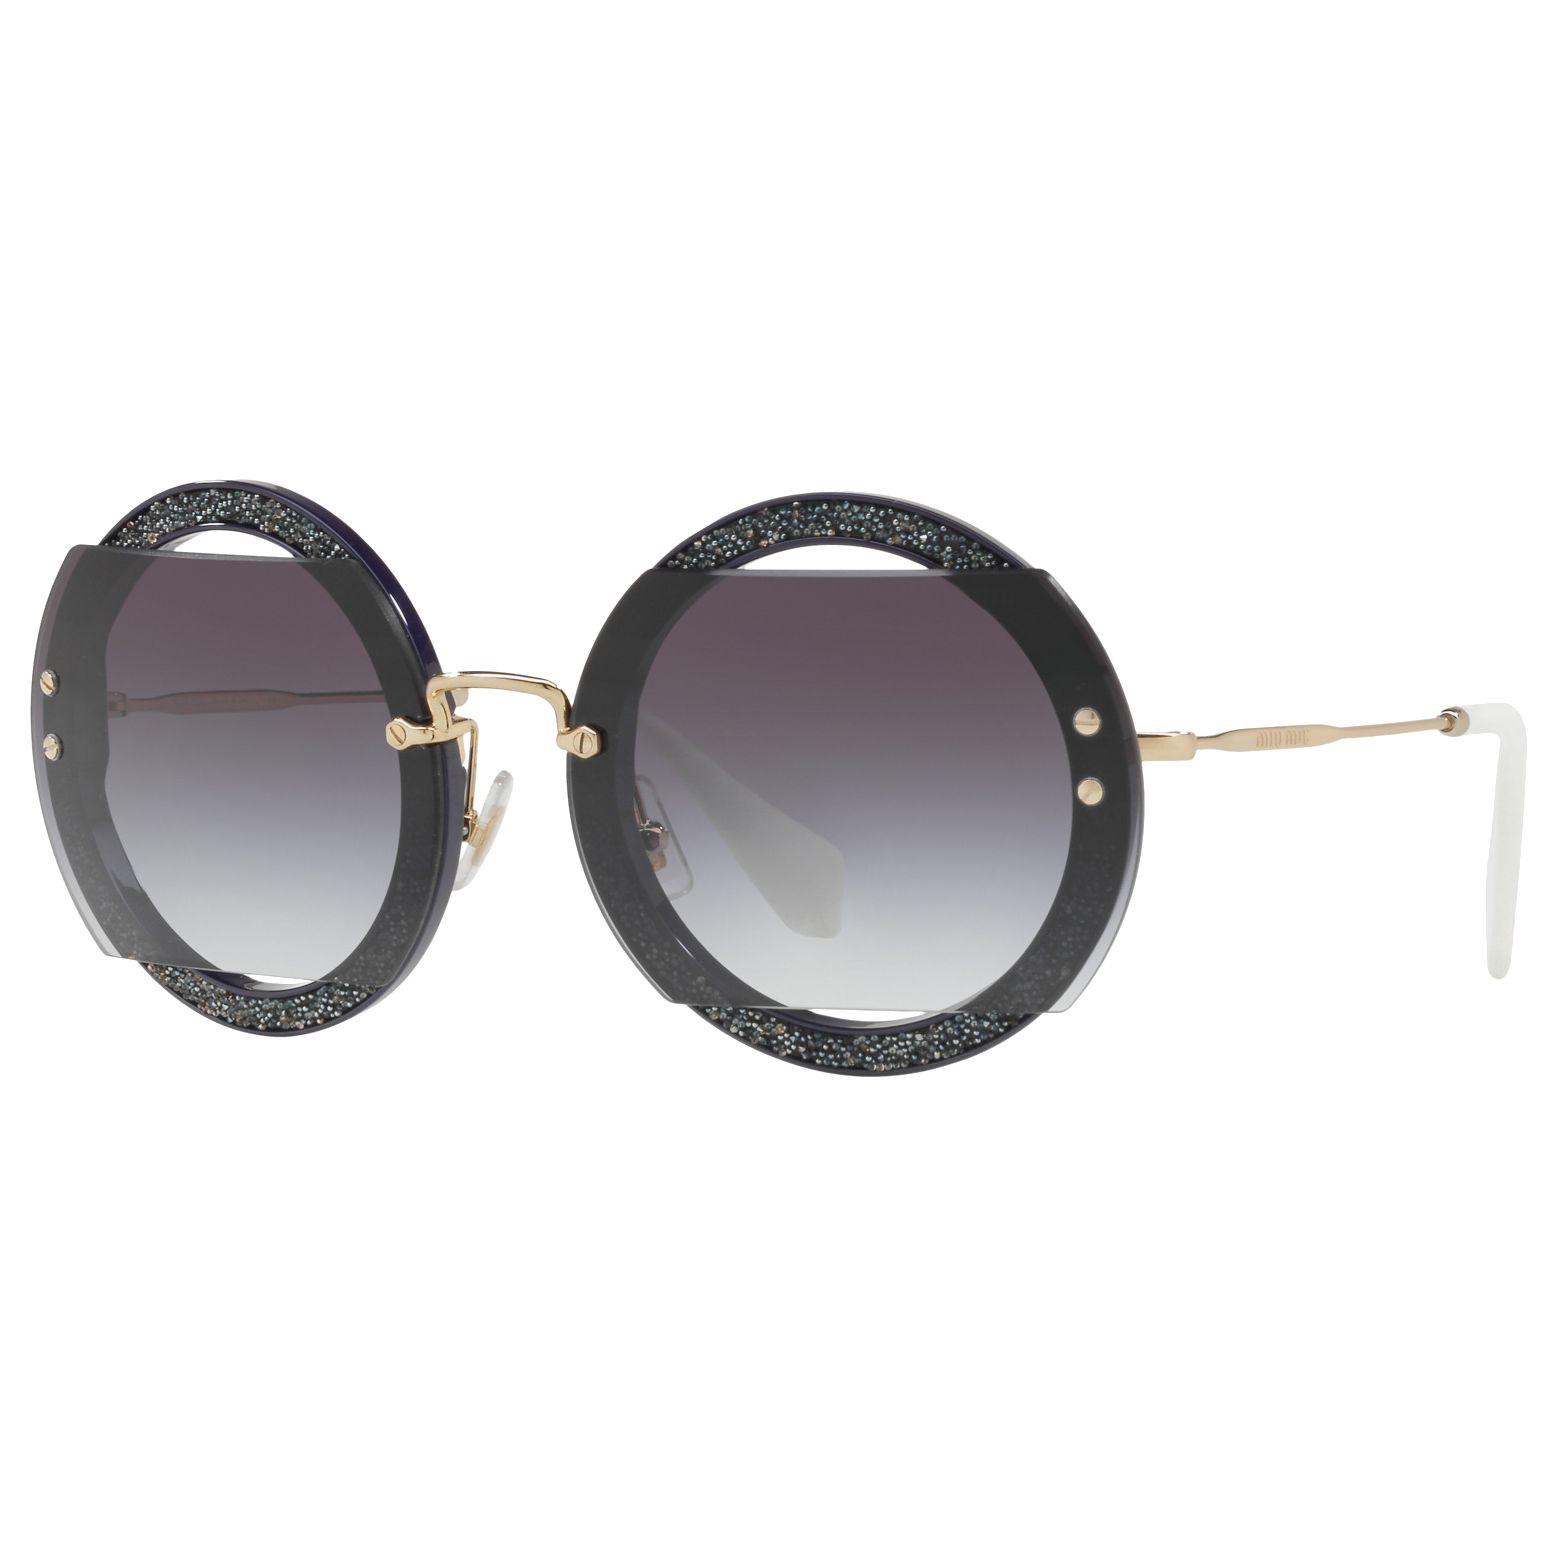 Miu Miu Miu Miu MU 06SS Round Beaded Sunglasses, Grey